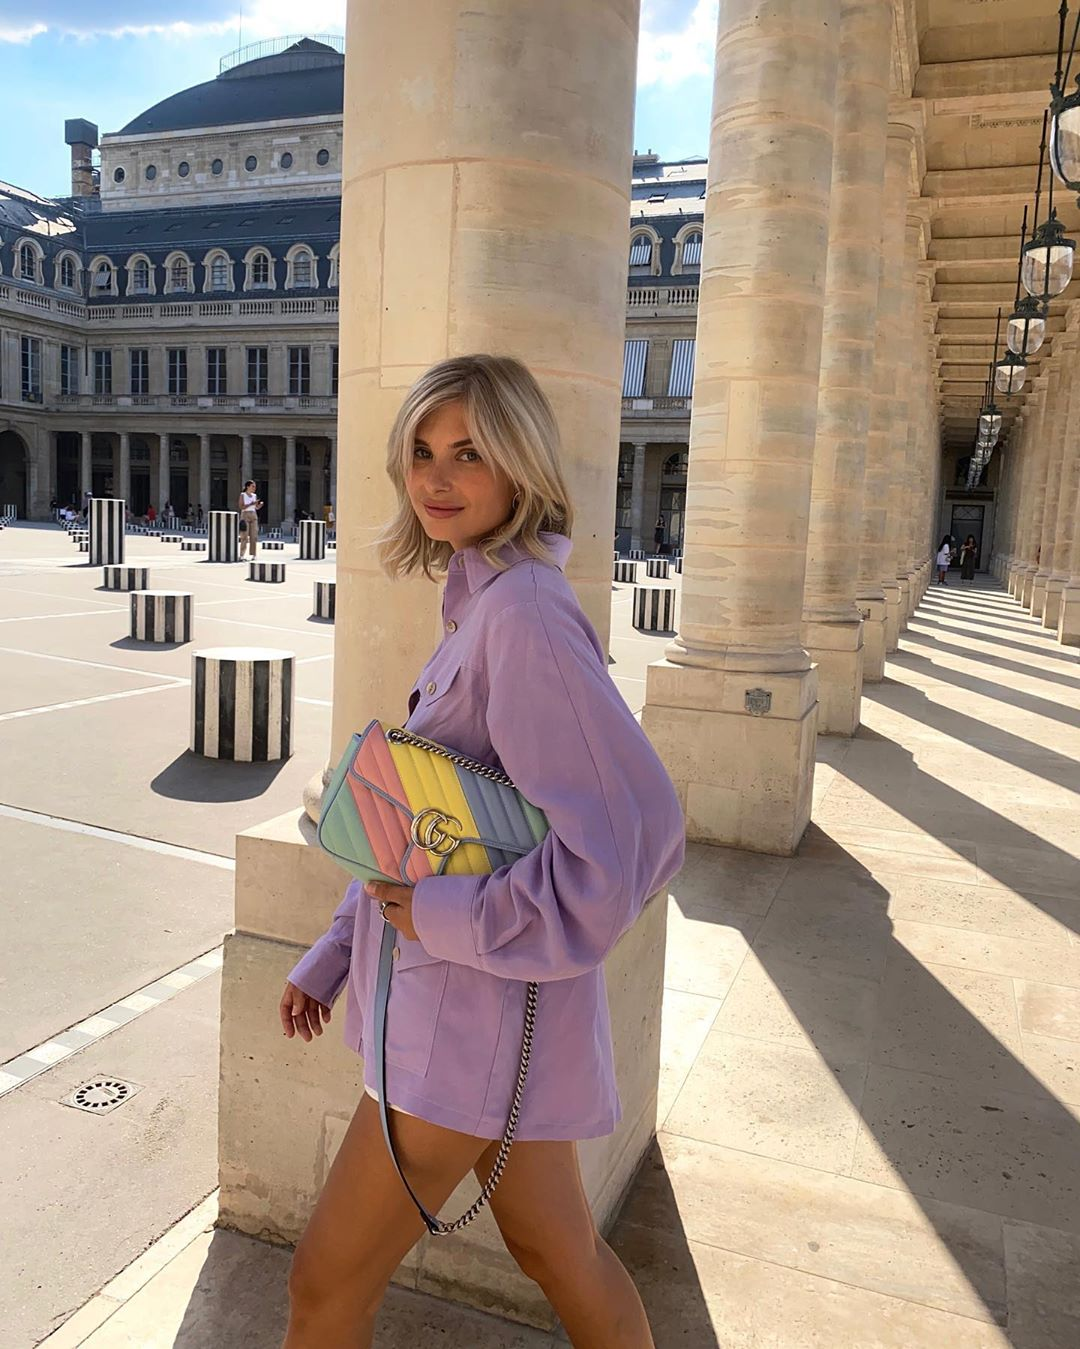 xenia-adonts-gucci-gg-marmont-multicolored-pastel-diagonal-matelasse-leather-small-shoulder-bag-instagram